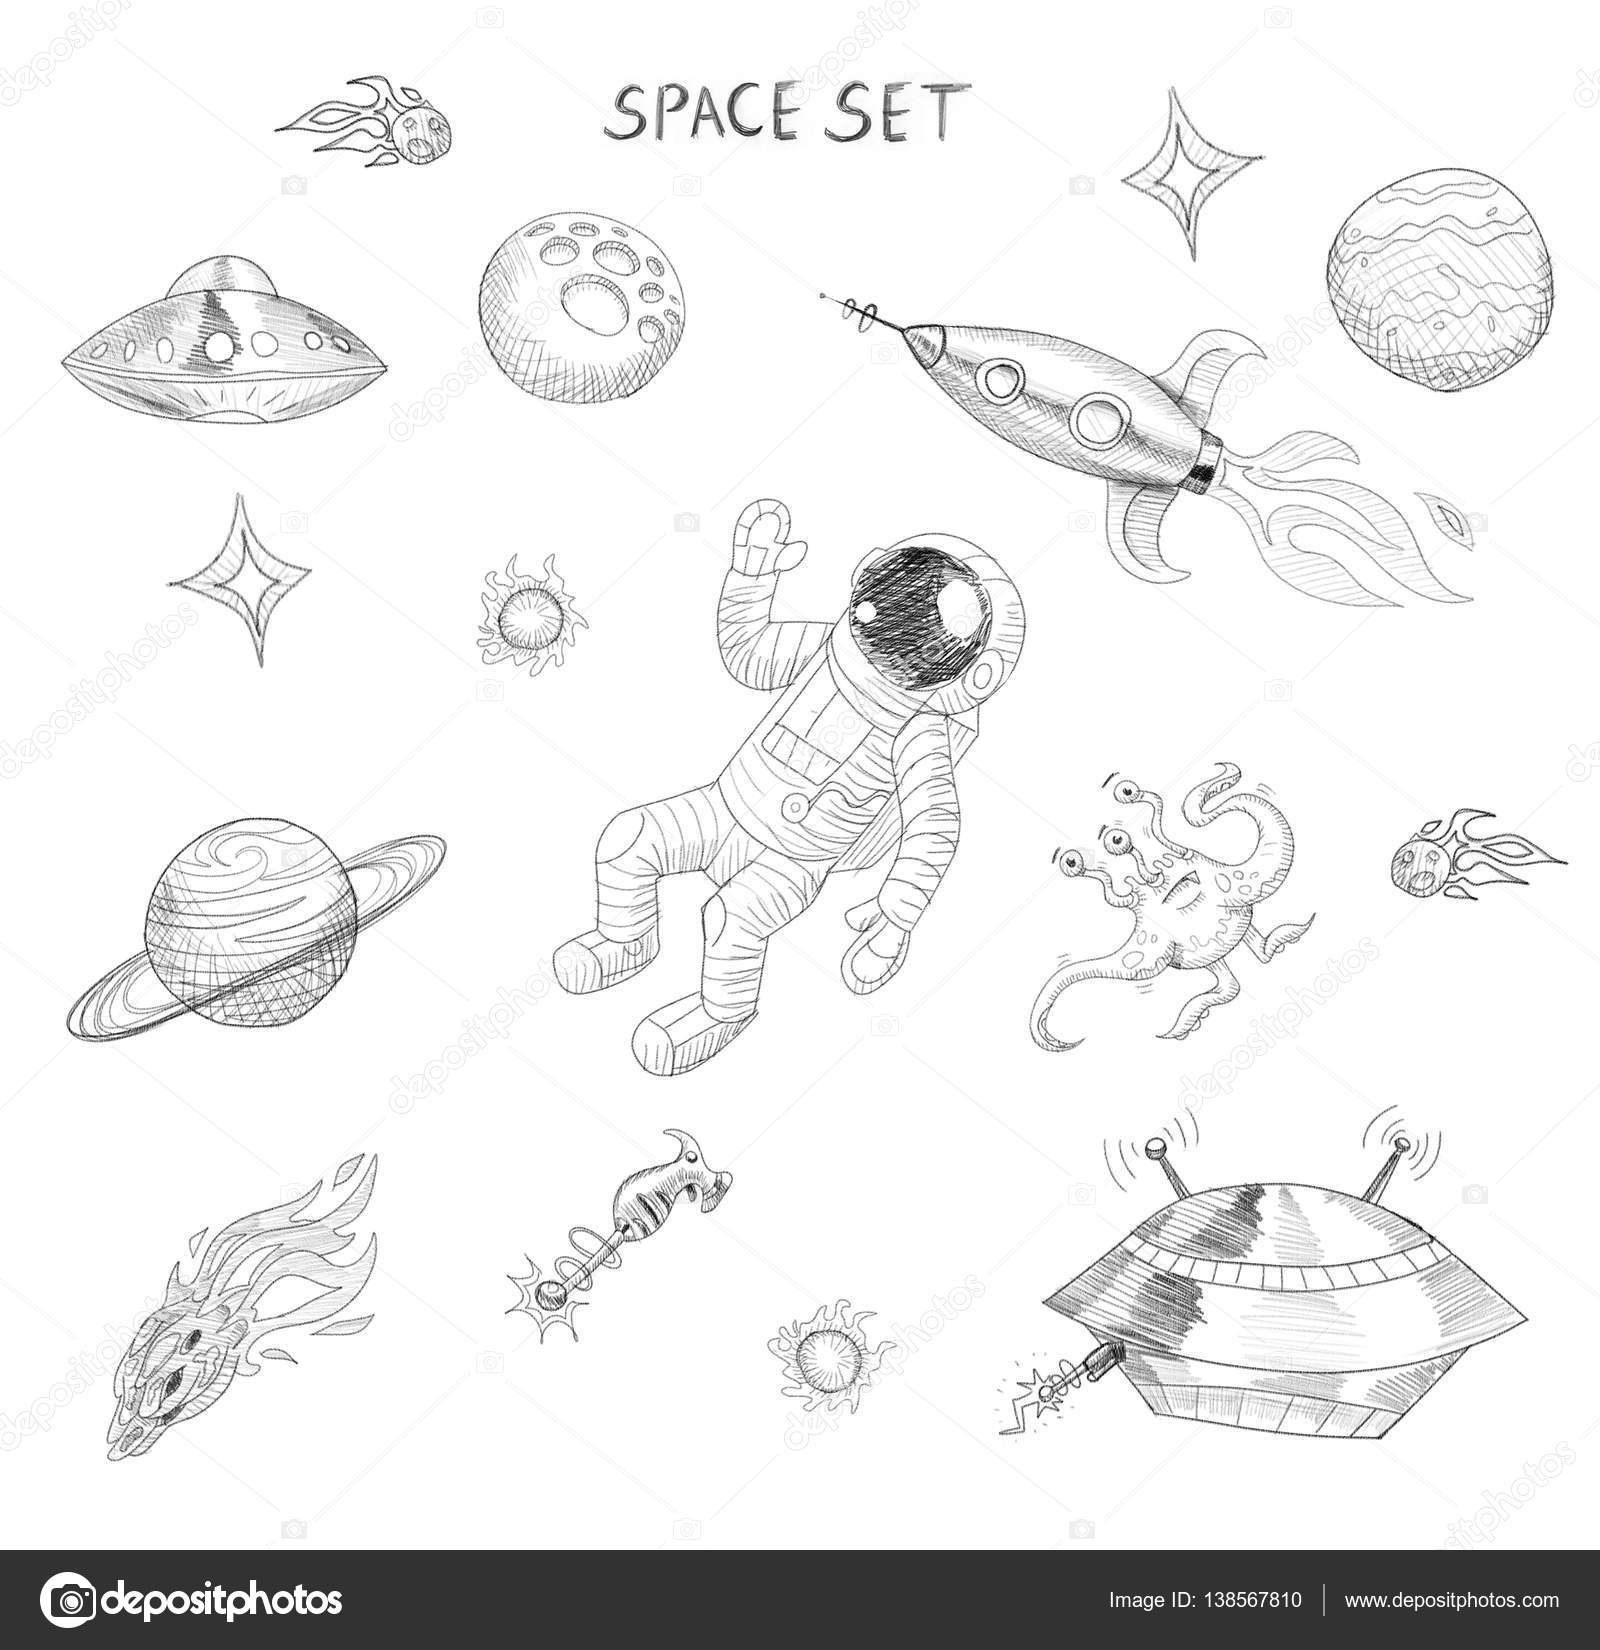 Drawing Of Space Objects: Astronaut, Alien, Ufo, Spaceship